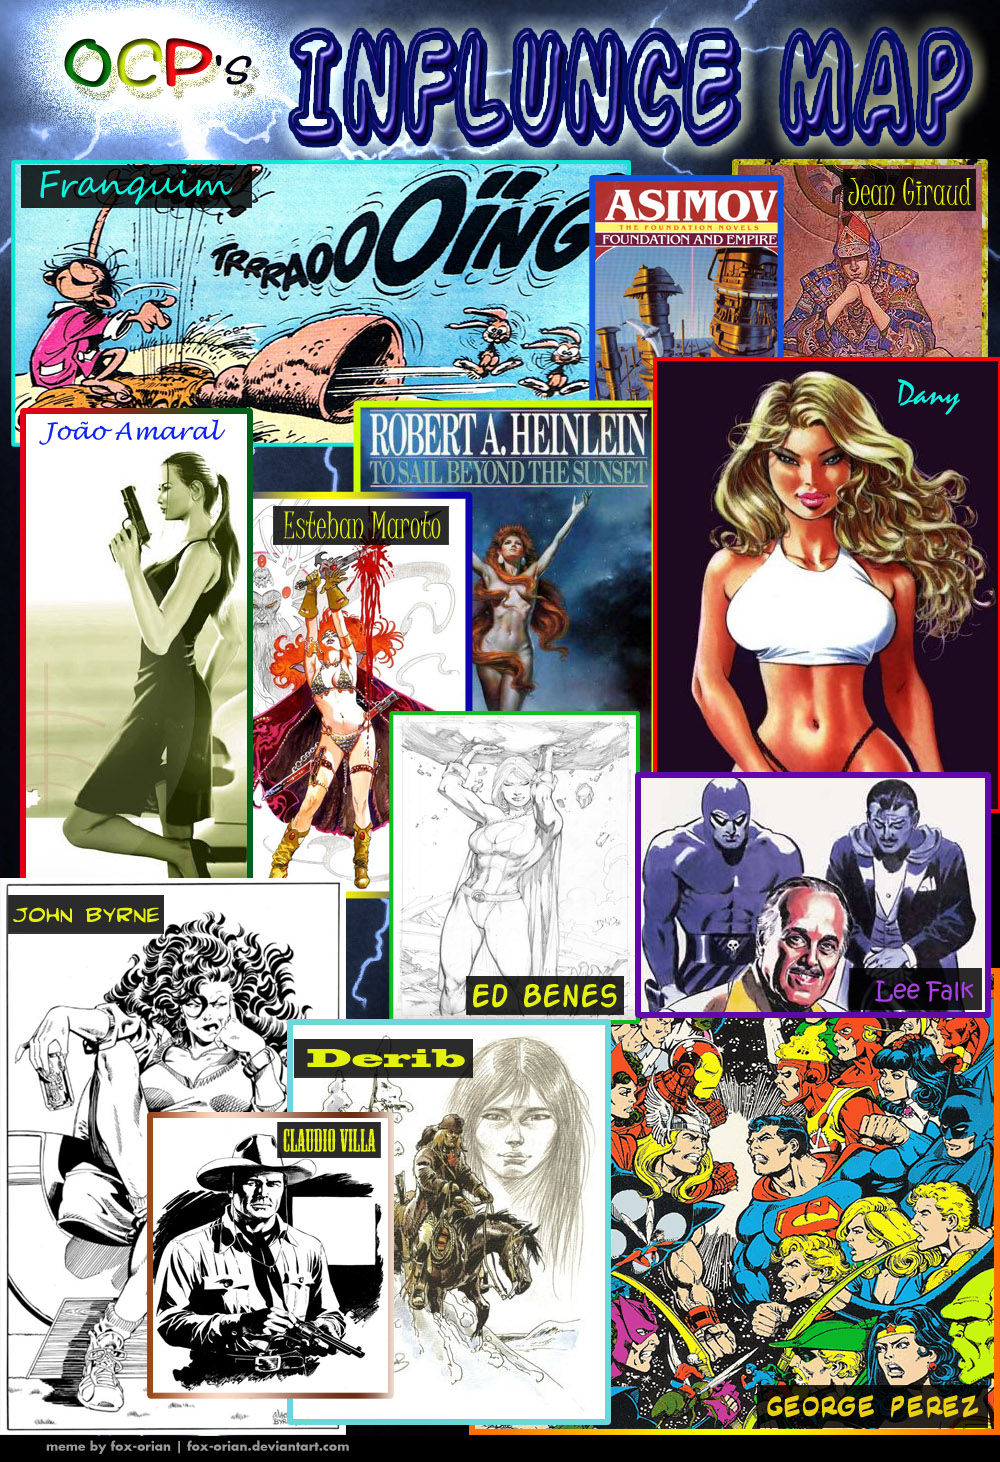 OCP?s Influence Map